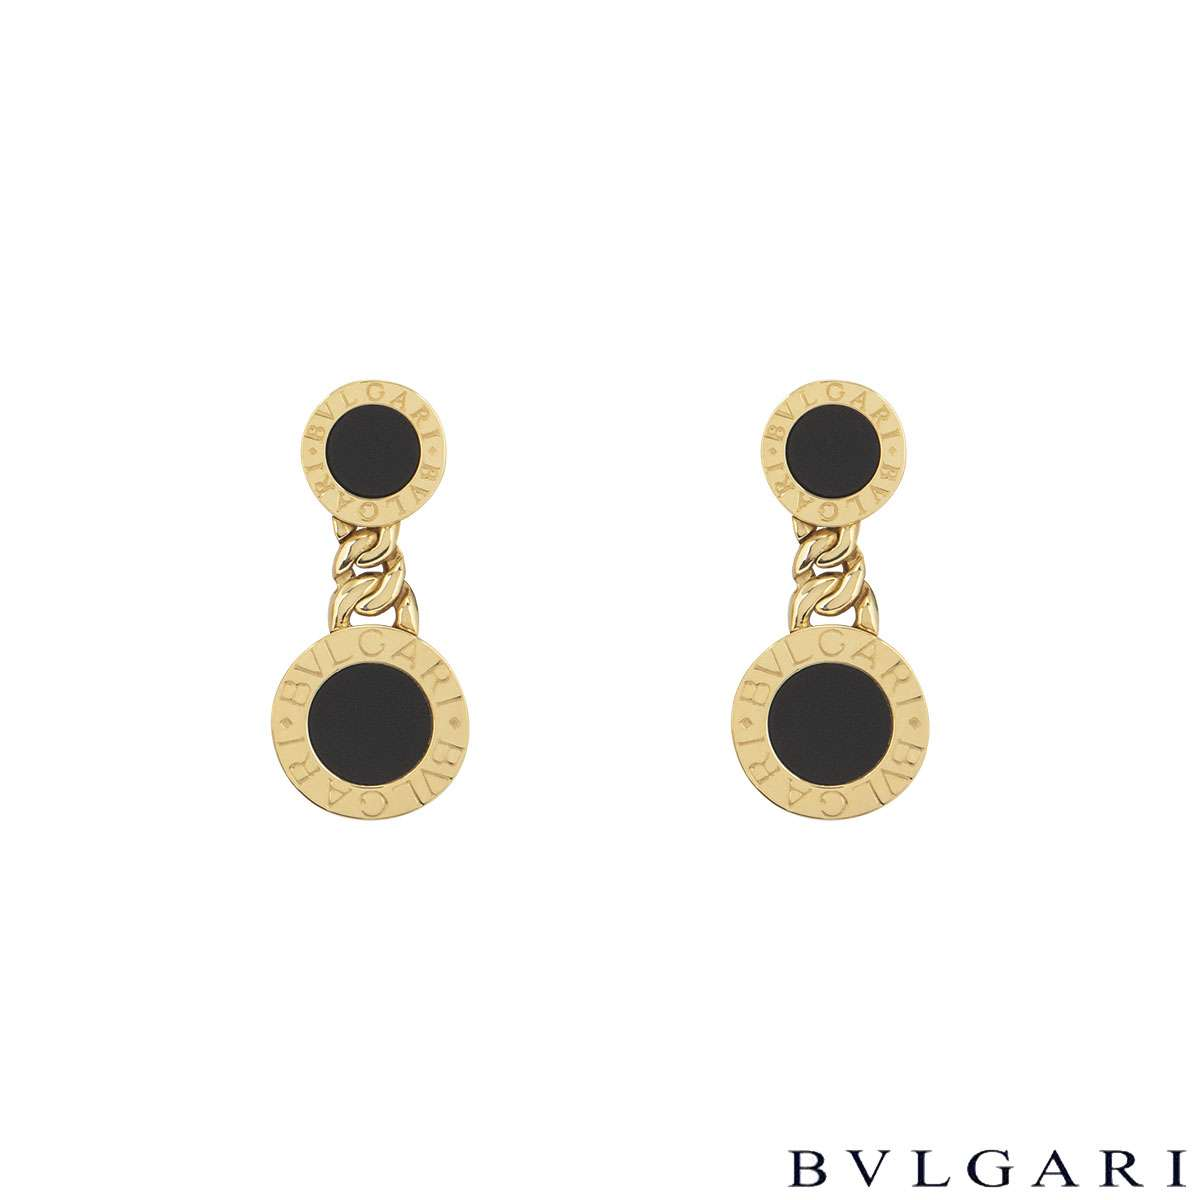 Bvlgari Bvlgari Onyx Earrings